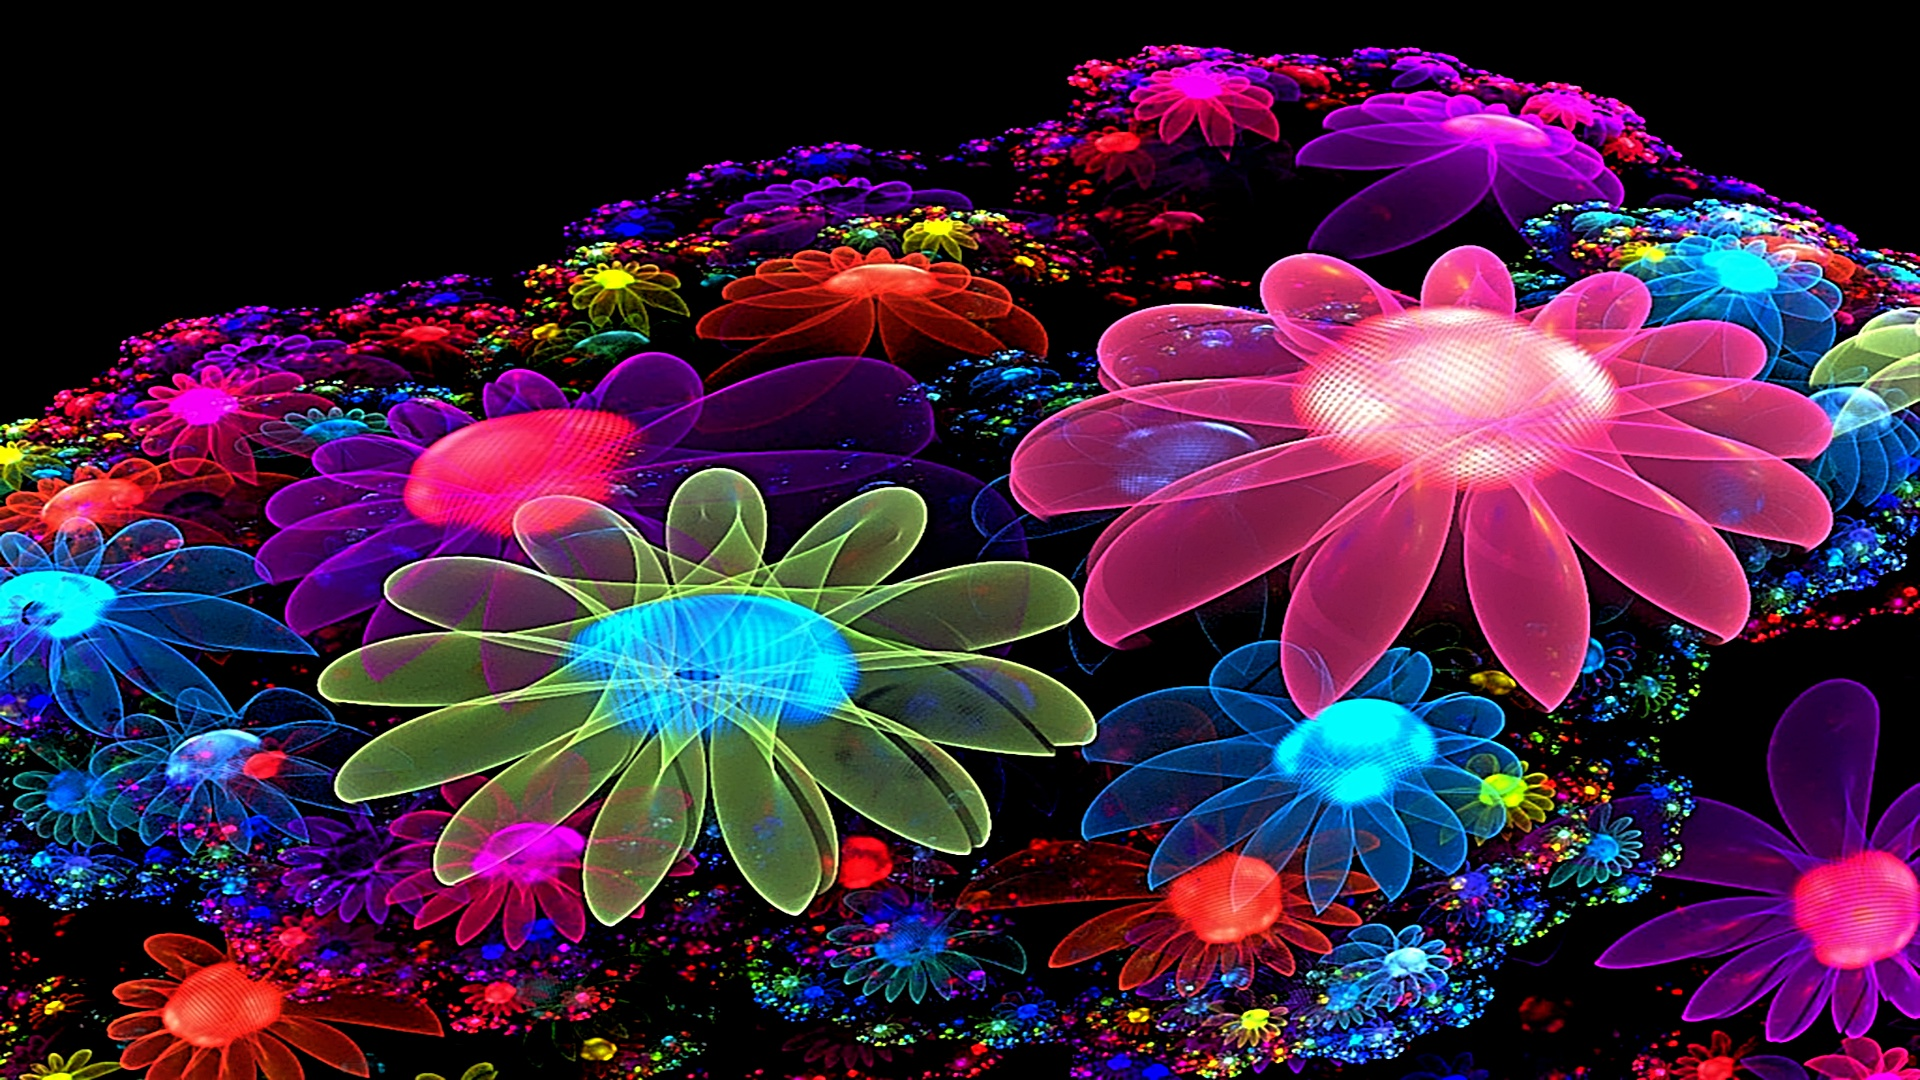 Colorful Flowers Desktop Wallpapers Images   Fullsize Wallpaper 1920x1080